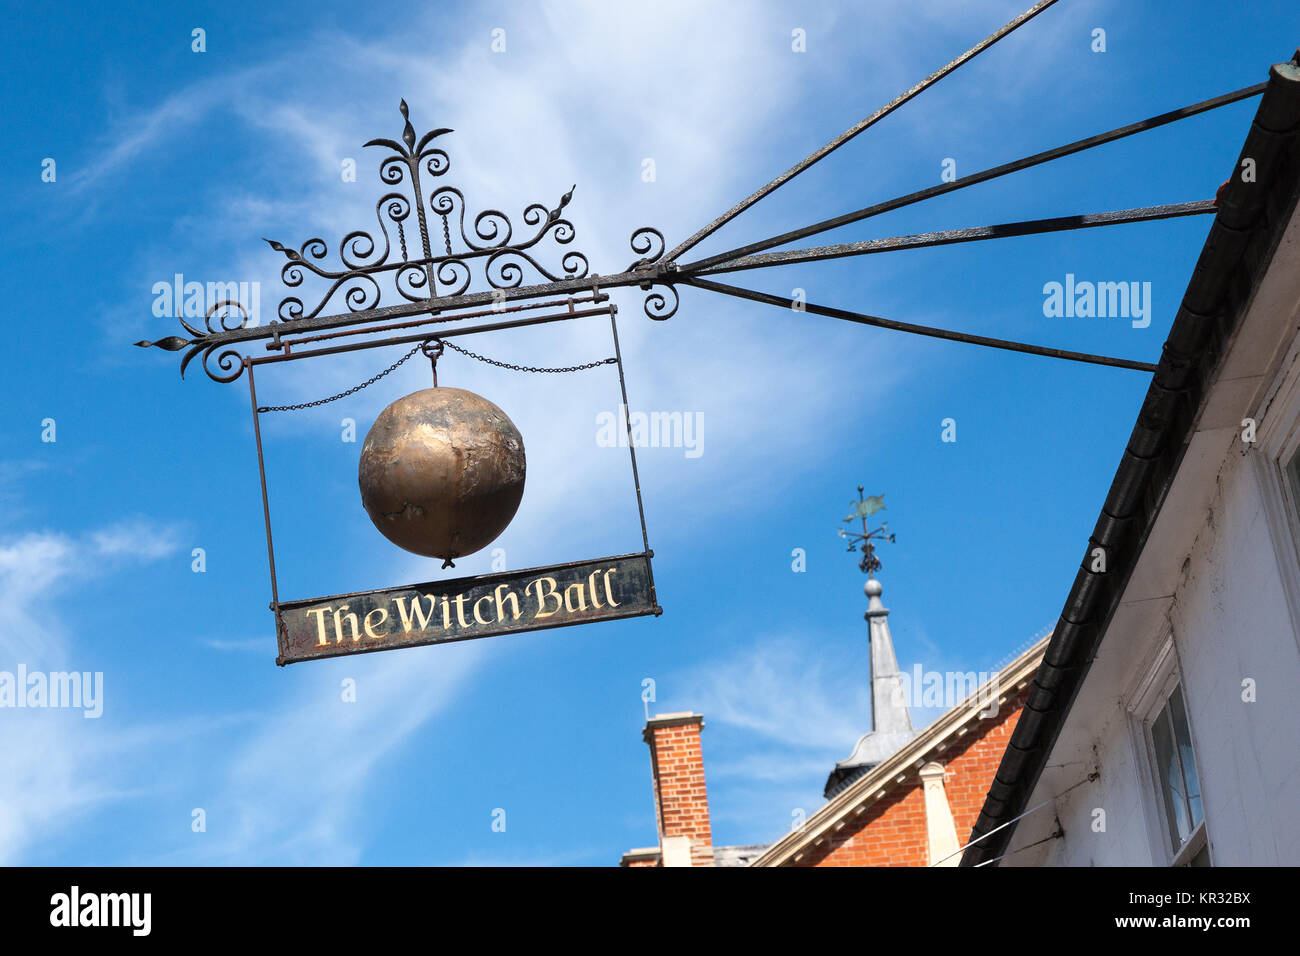 The Whitch Ball sign Thame Oxfordshire UK - Stock Image